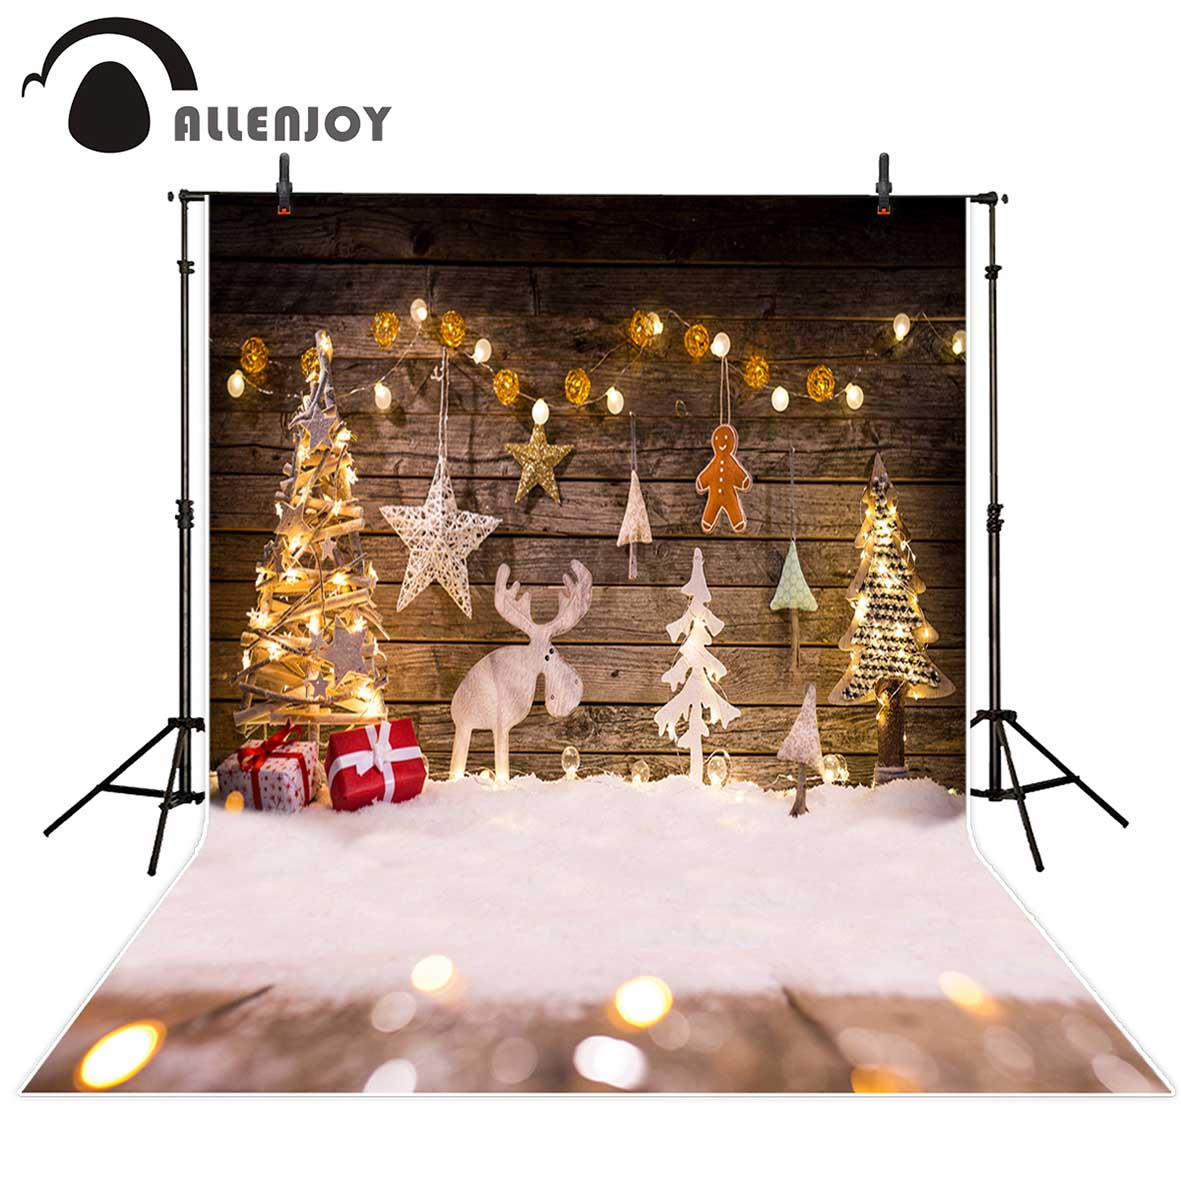 Allenjoy background for photo Christmas shiny tree snow kids wood wall backdrop photocall photobooth photo studio professional